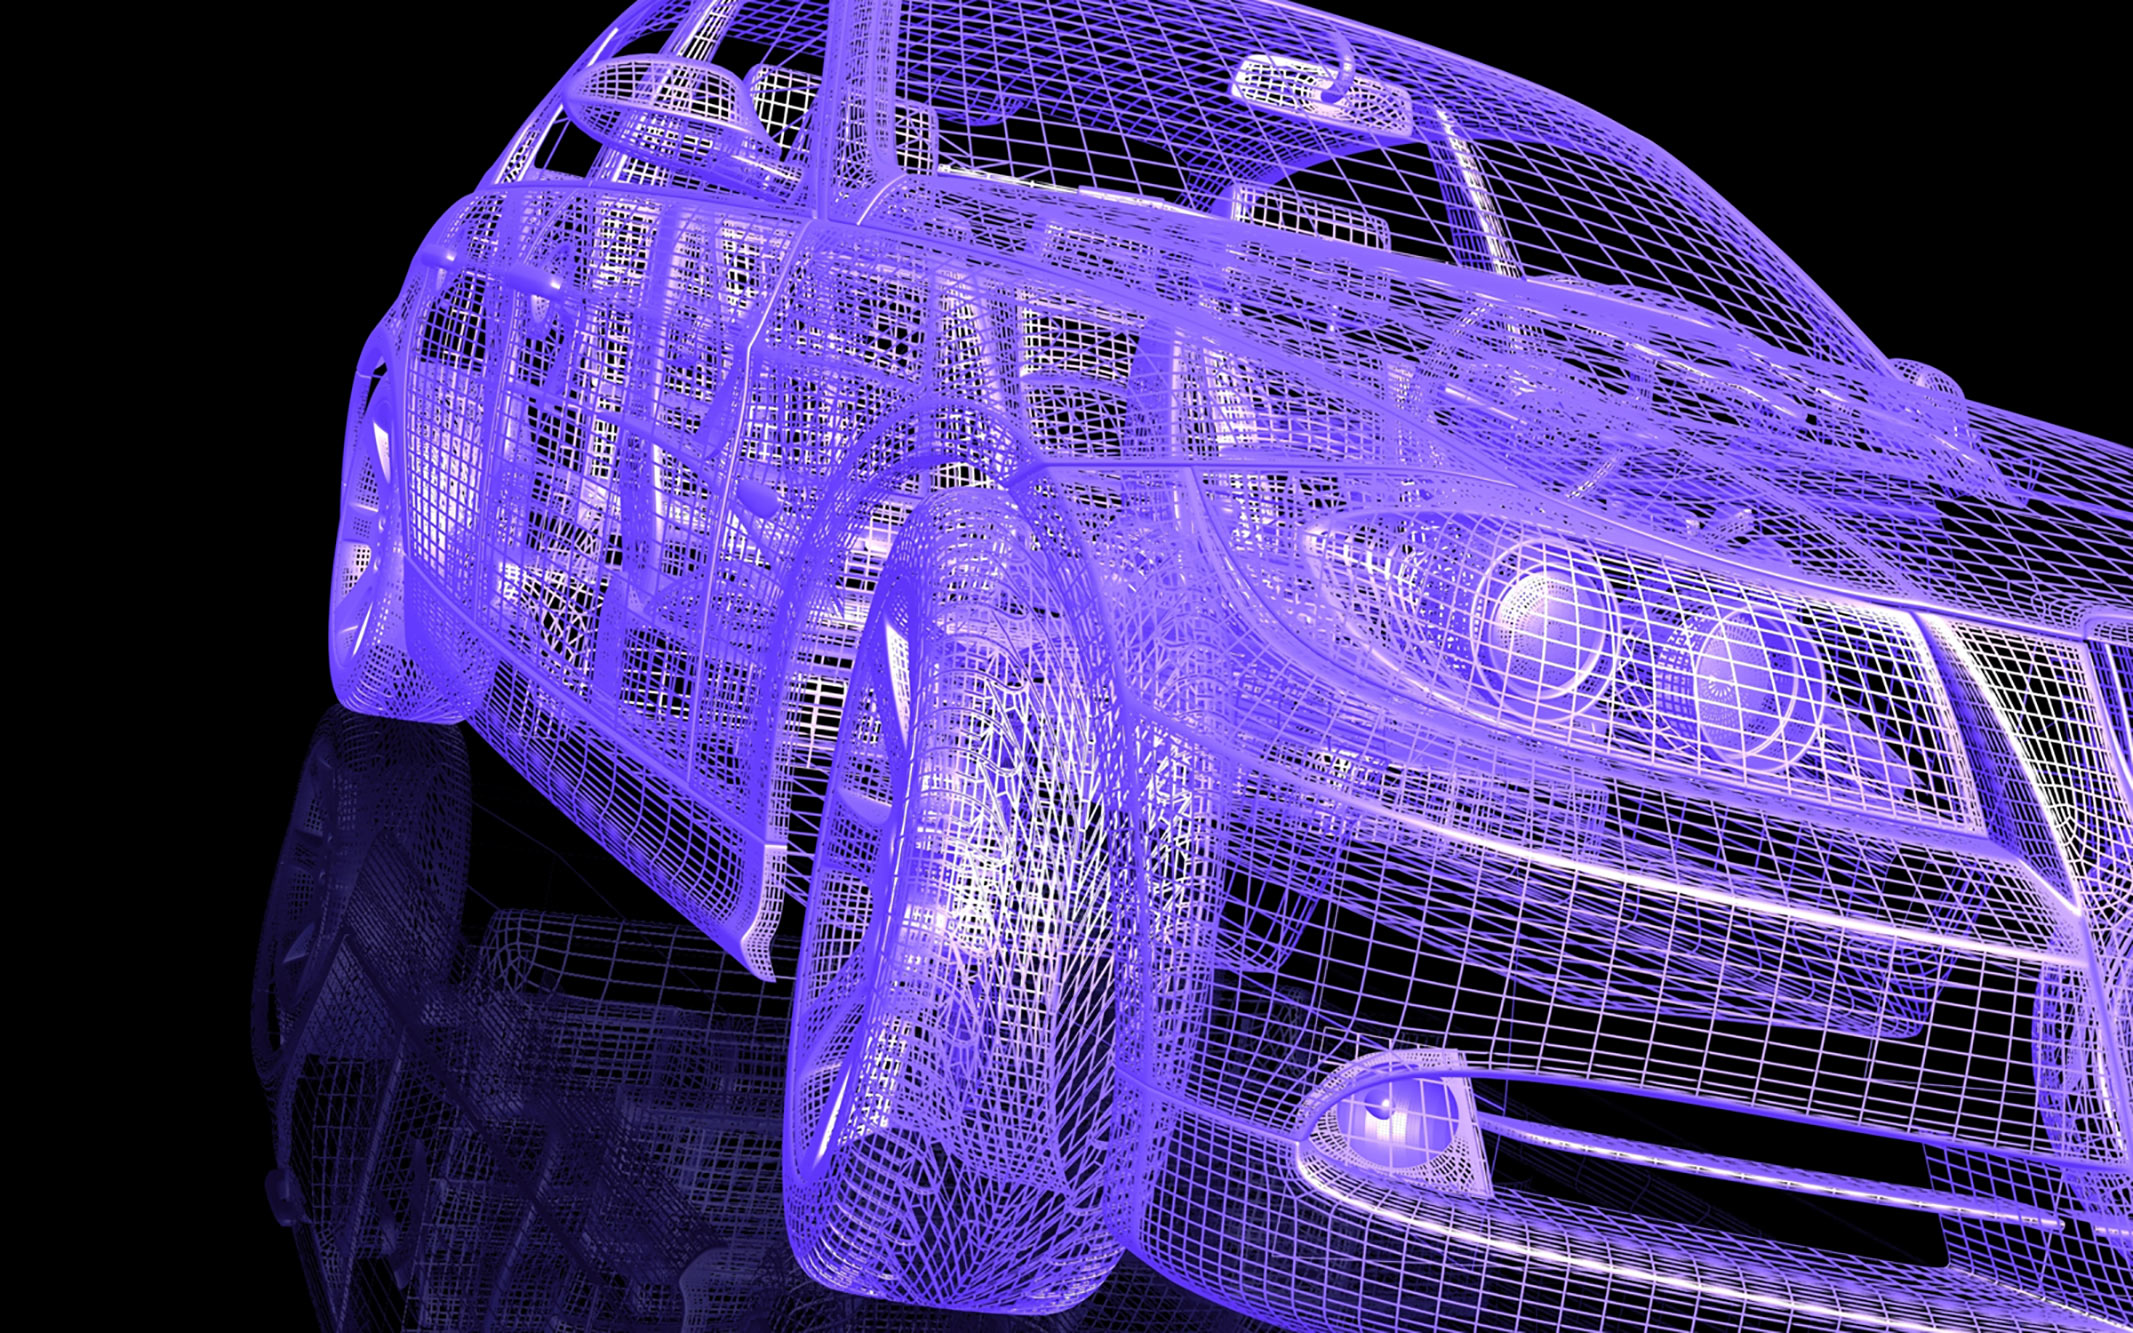 3D technology in the automotive sector is still developing.